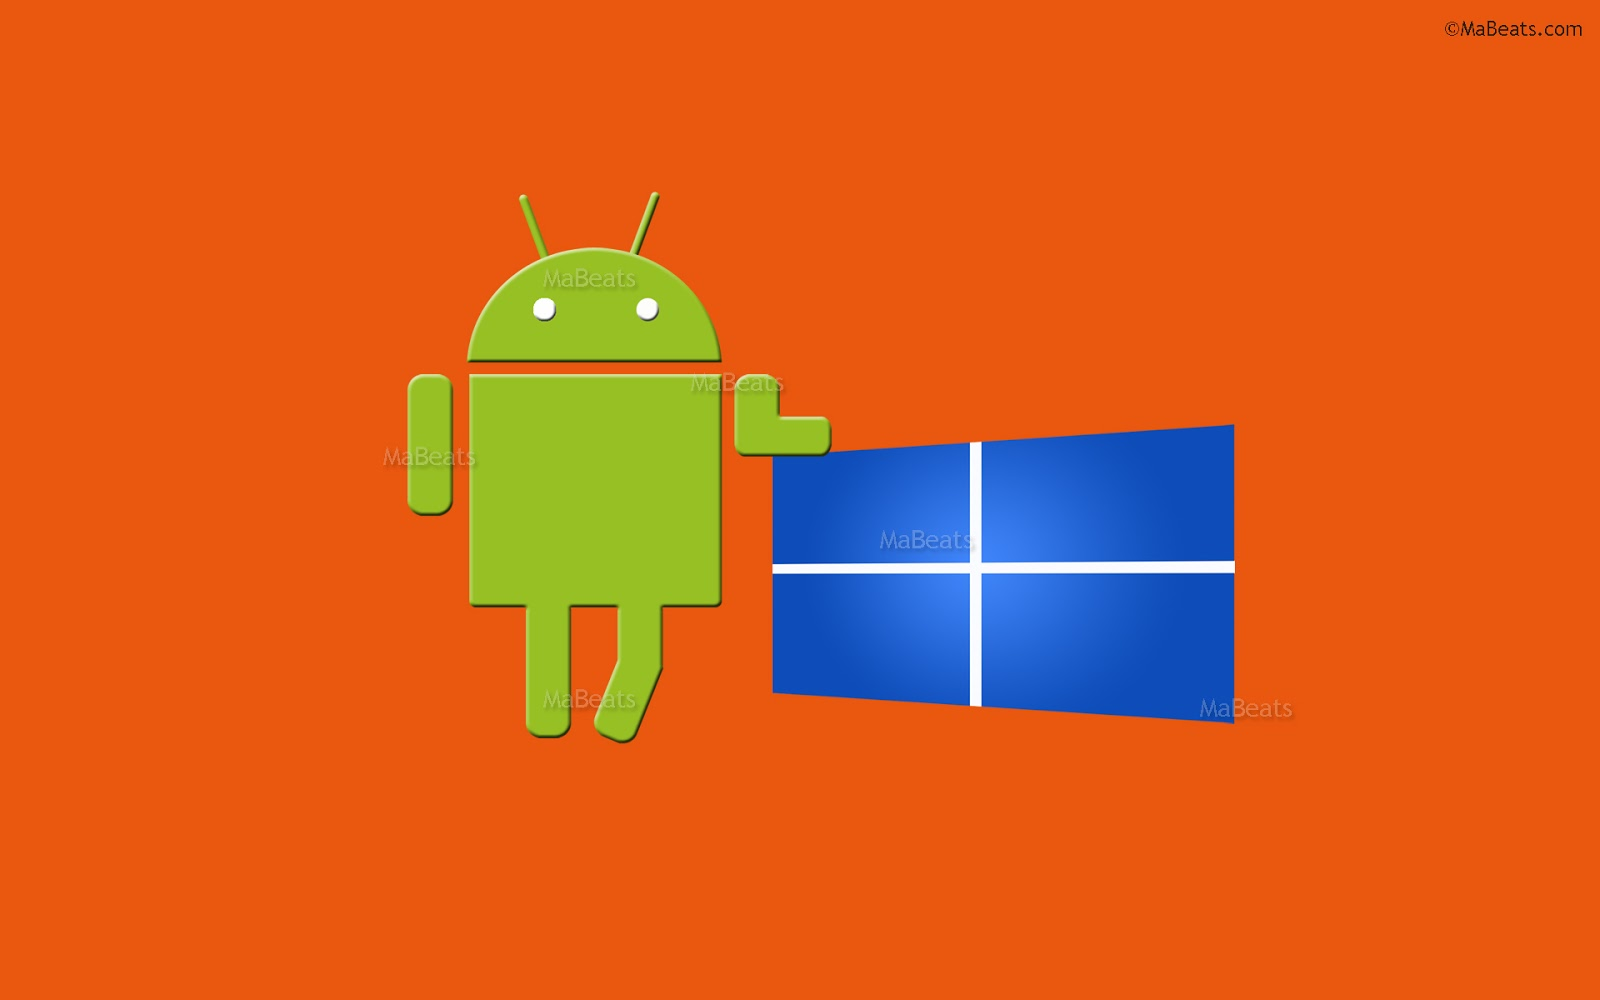 Android and Windows -  Historic similarities